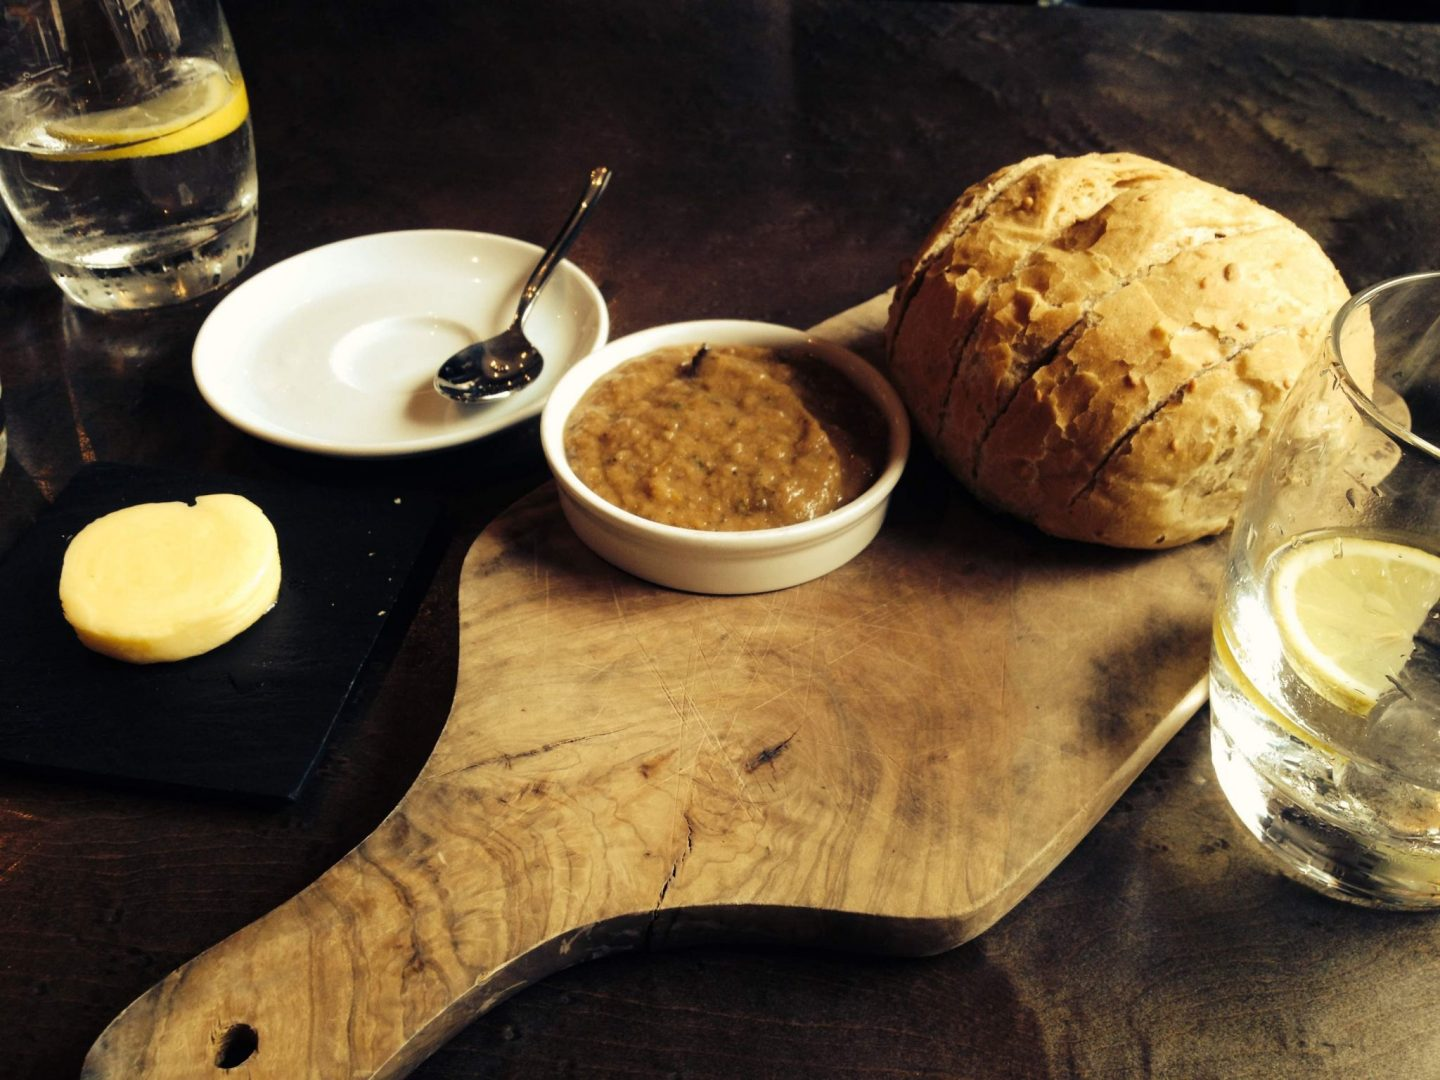 Bread and dip to start at Kyloe